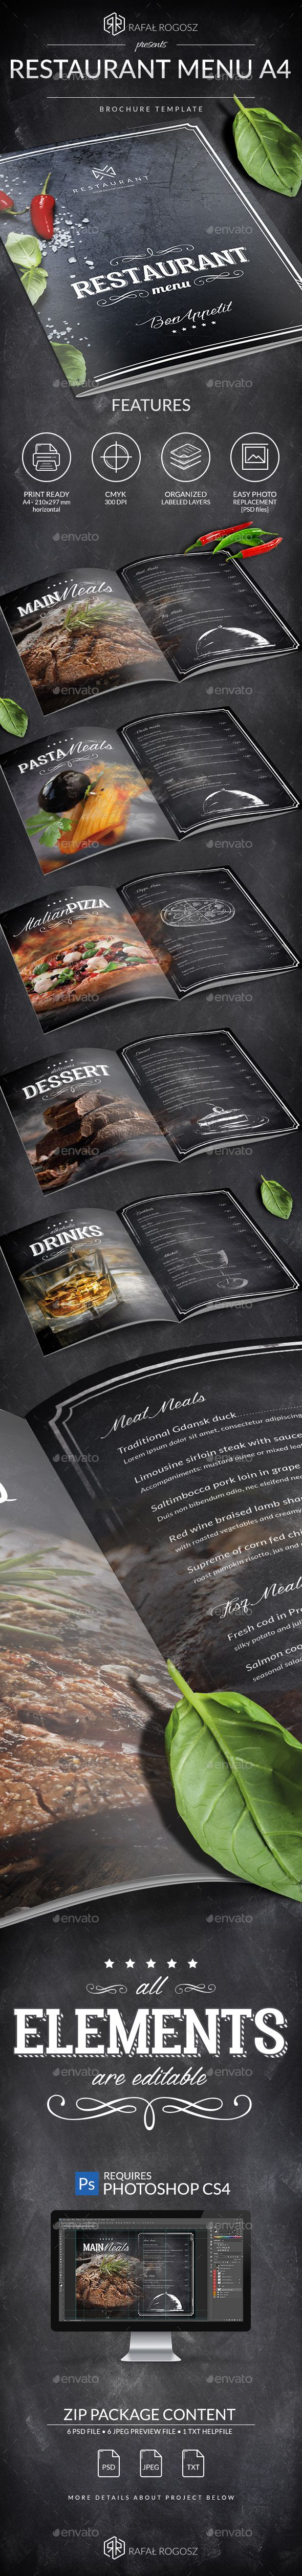 Blackboard Luxury Restaurant Menu A4 — Photoshop PSD #black #table tent • Download ➝ https://graphicriver.net/item/blackboard-luxury-restaurant-menu-a4/19681100?ref=pxcr